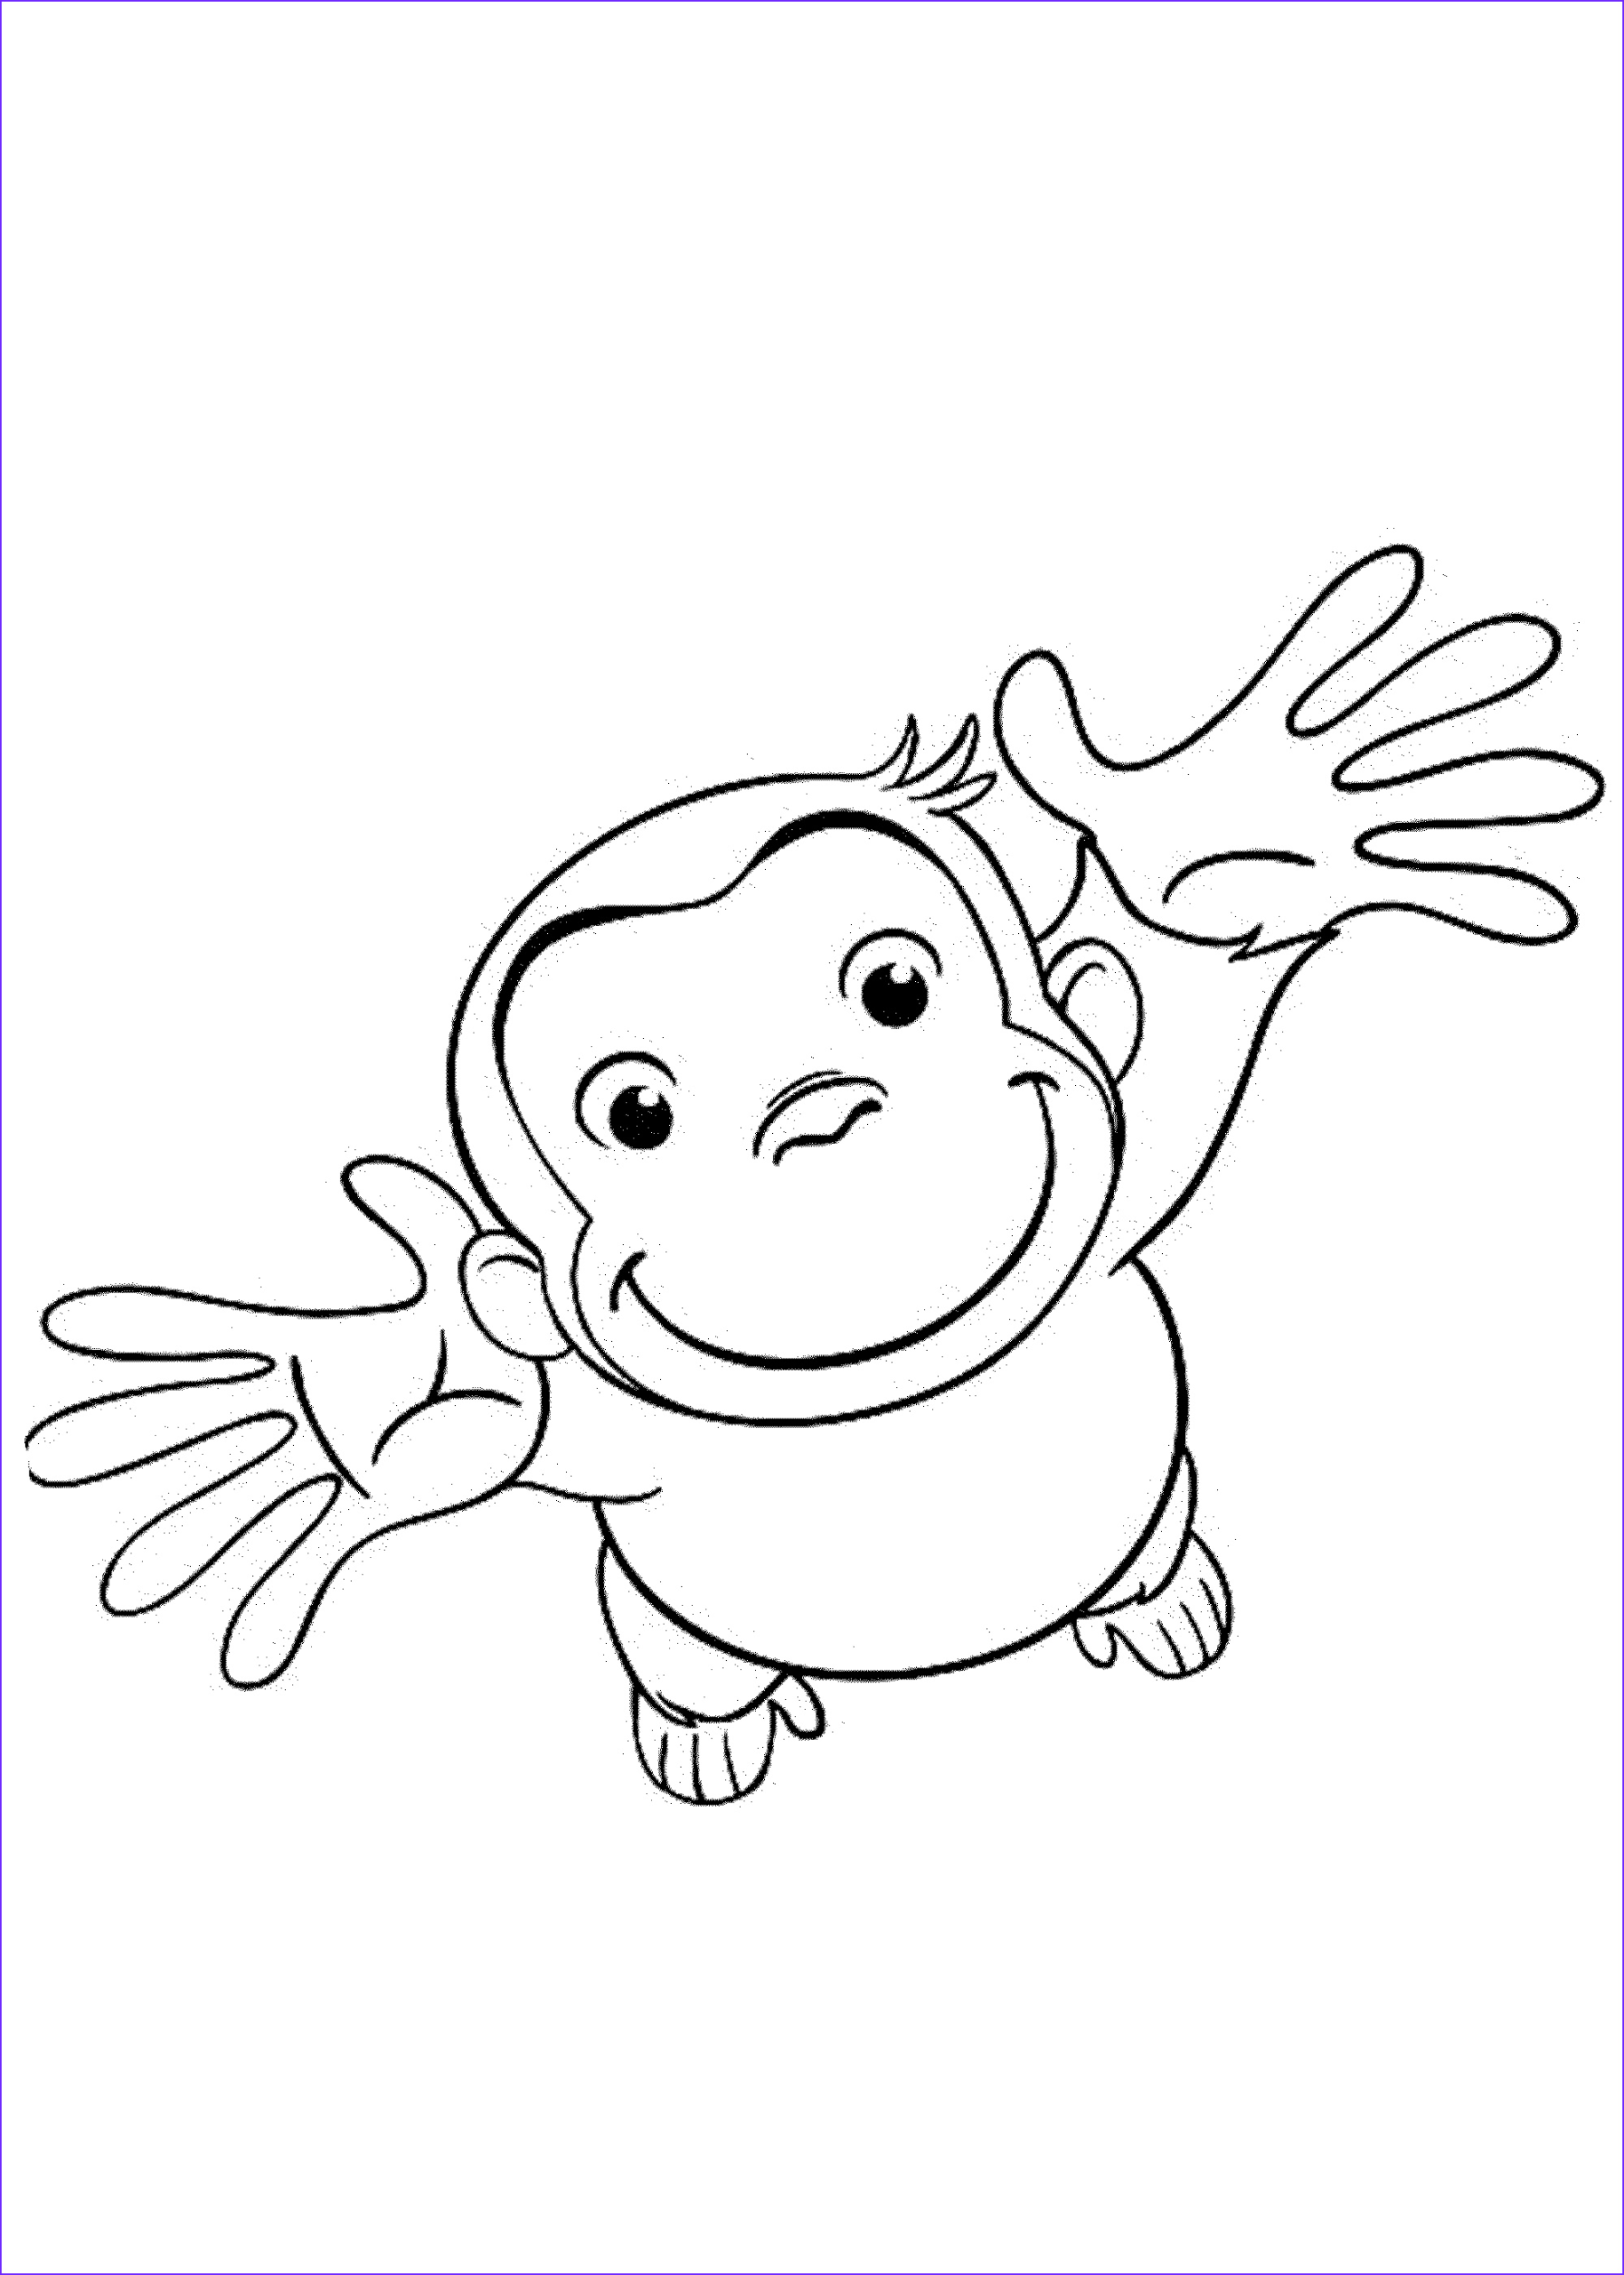 Coloring Pages For Kides Inspirational Photos Curious George Coloring Pages Best Coloring Pages For Kids